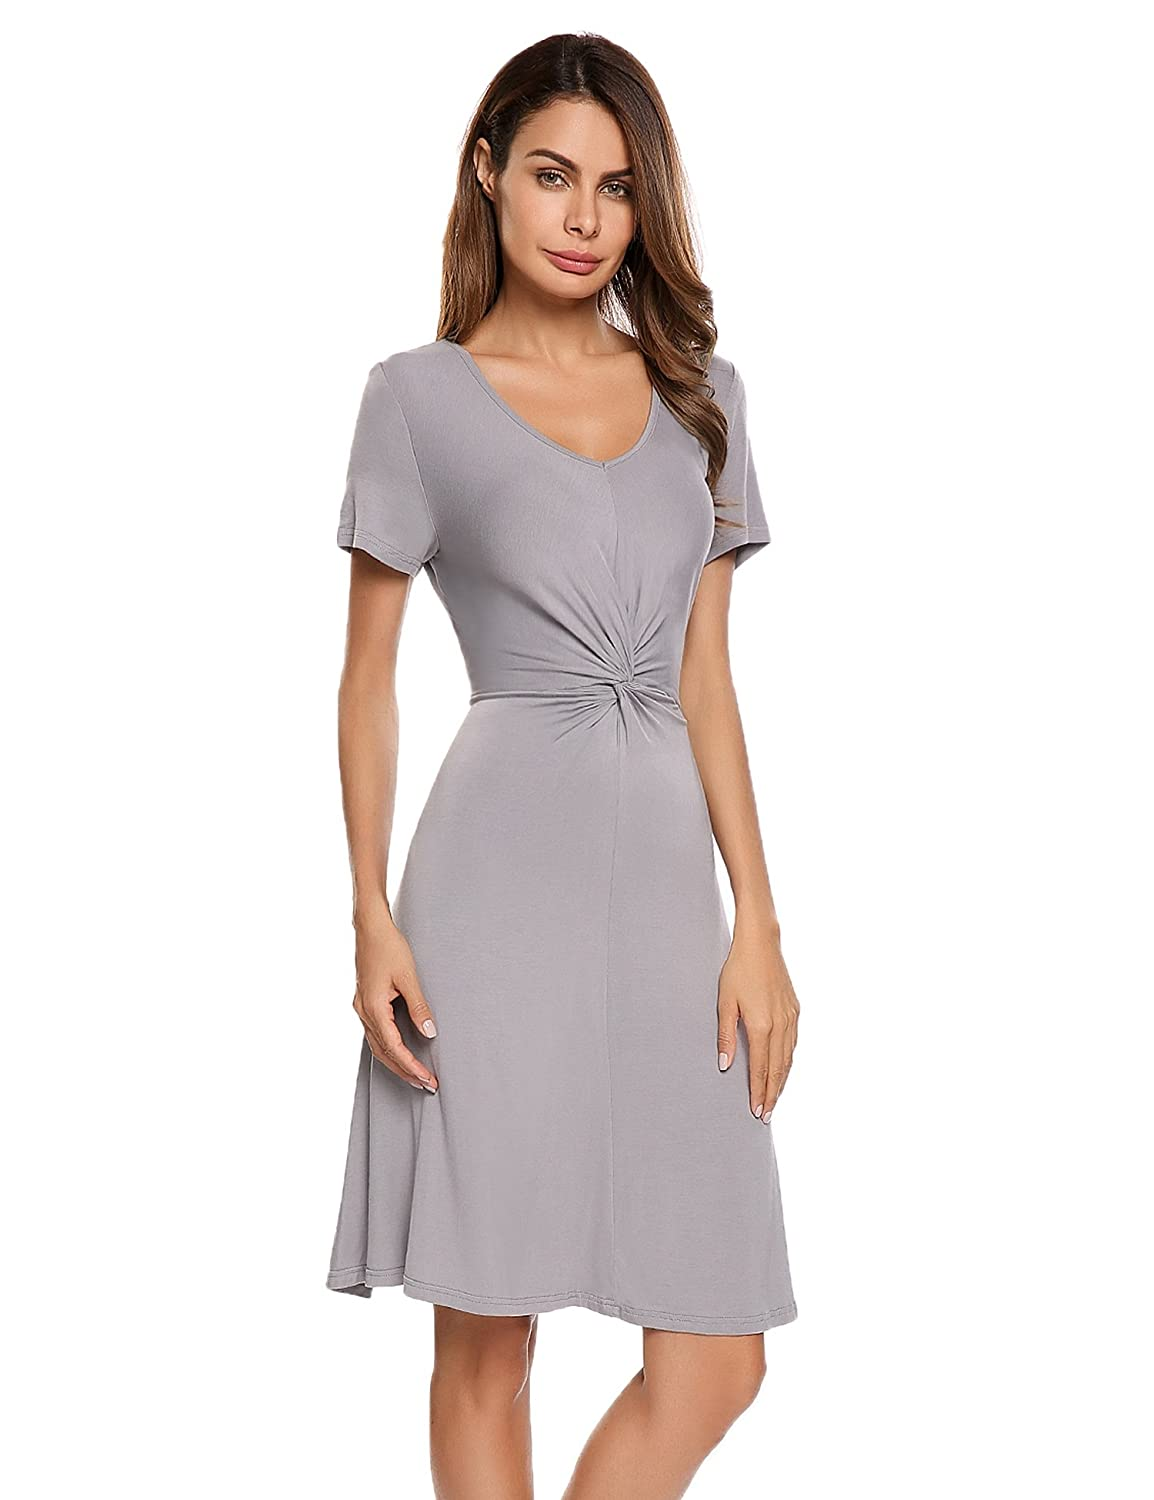 Meaneor Women's Summer Casual V Neck Knot Front Cocktail Party Wrap Dress ##AMH013526